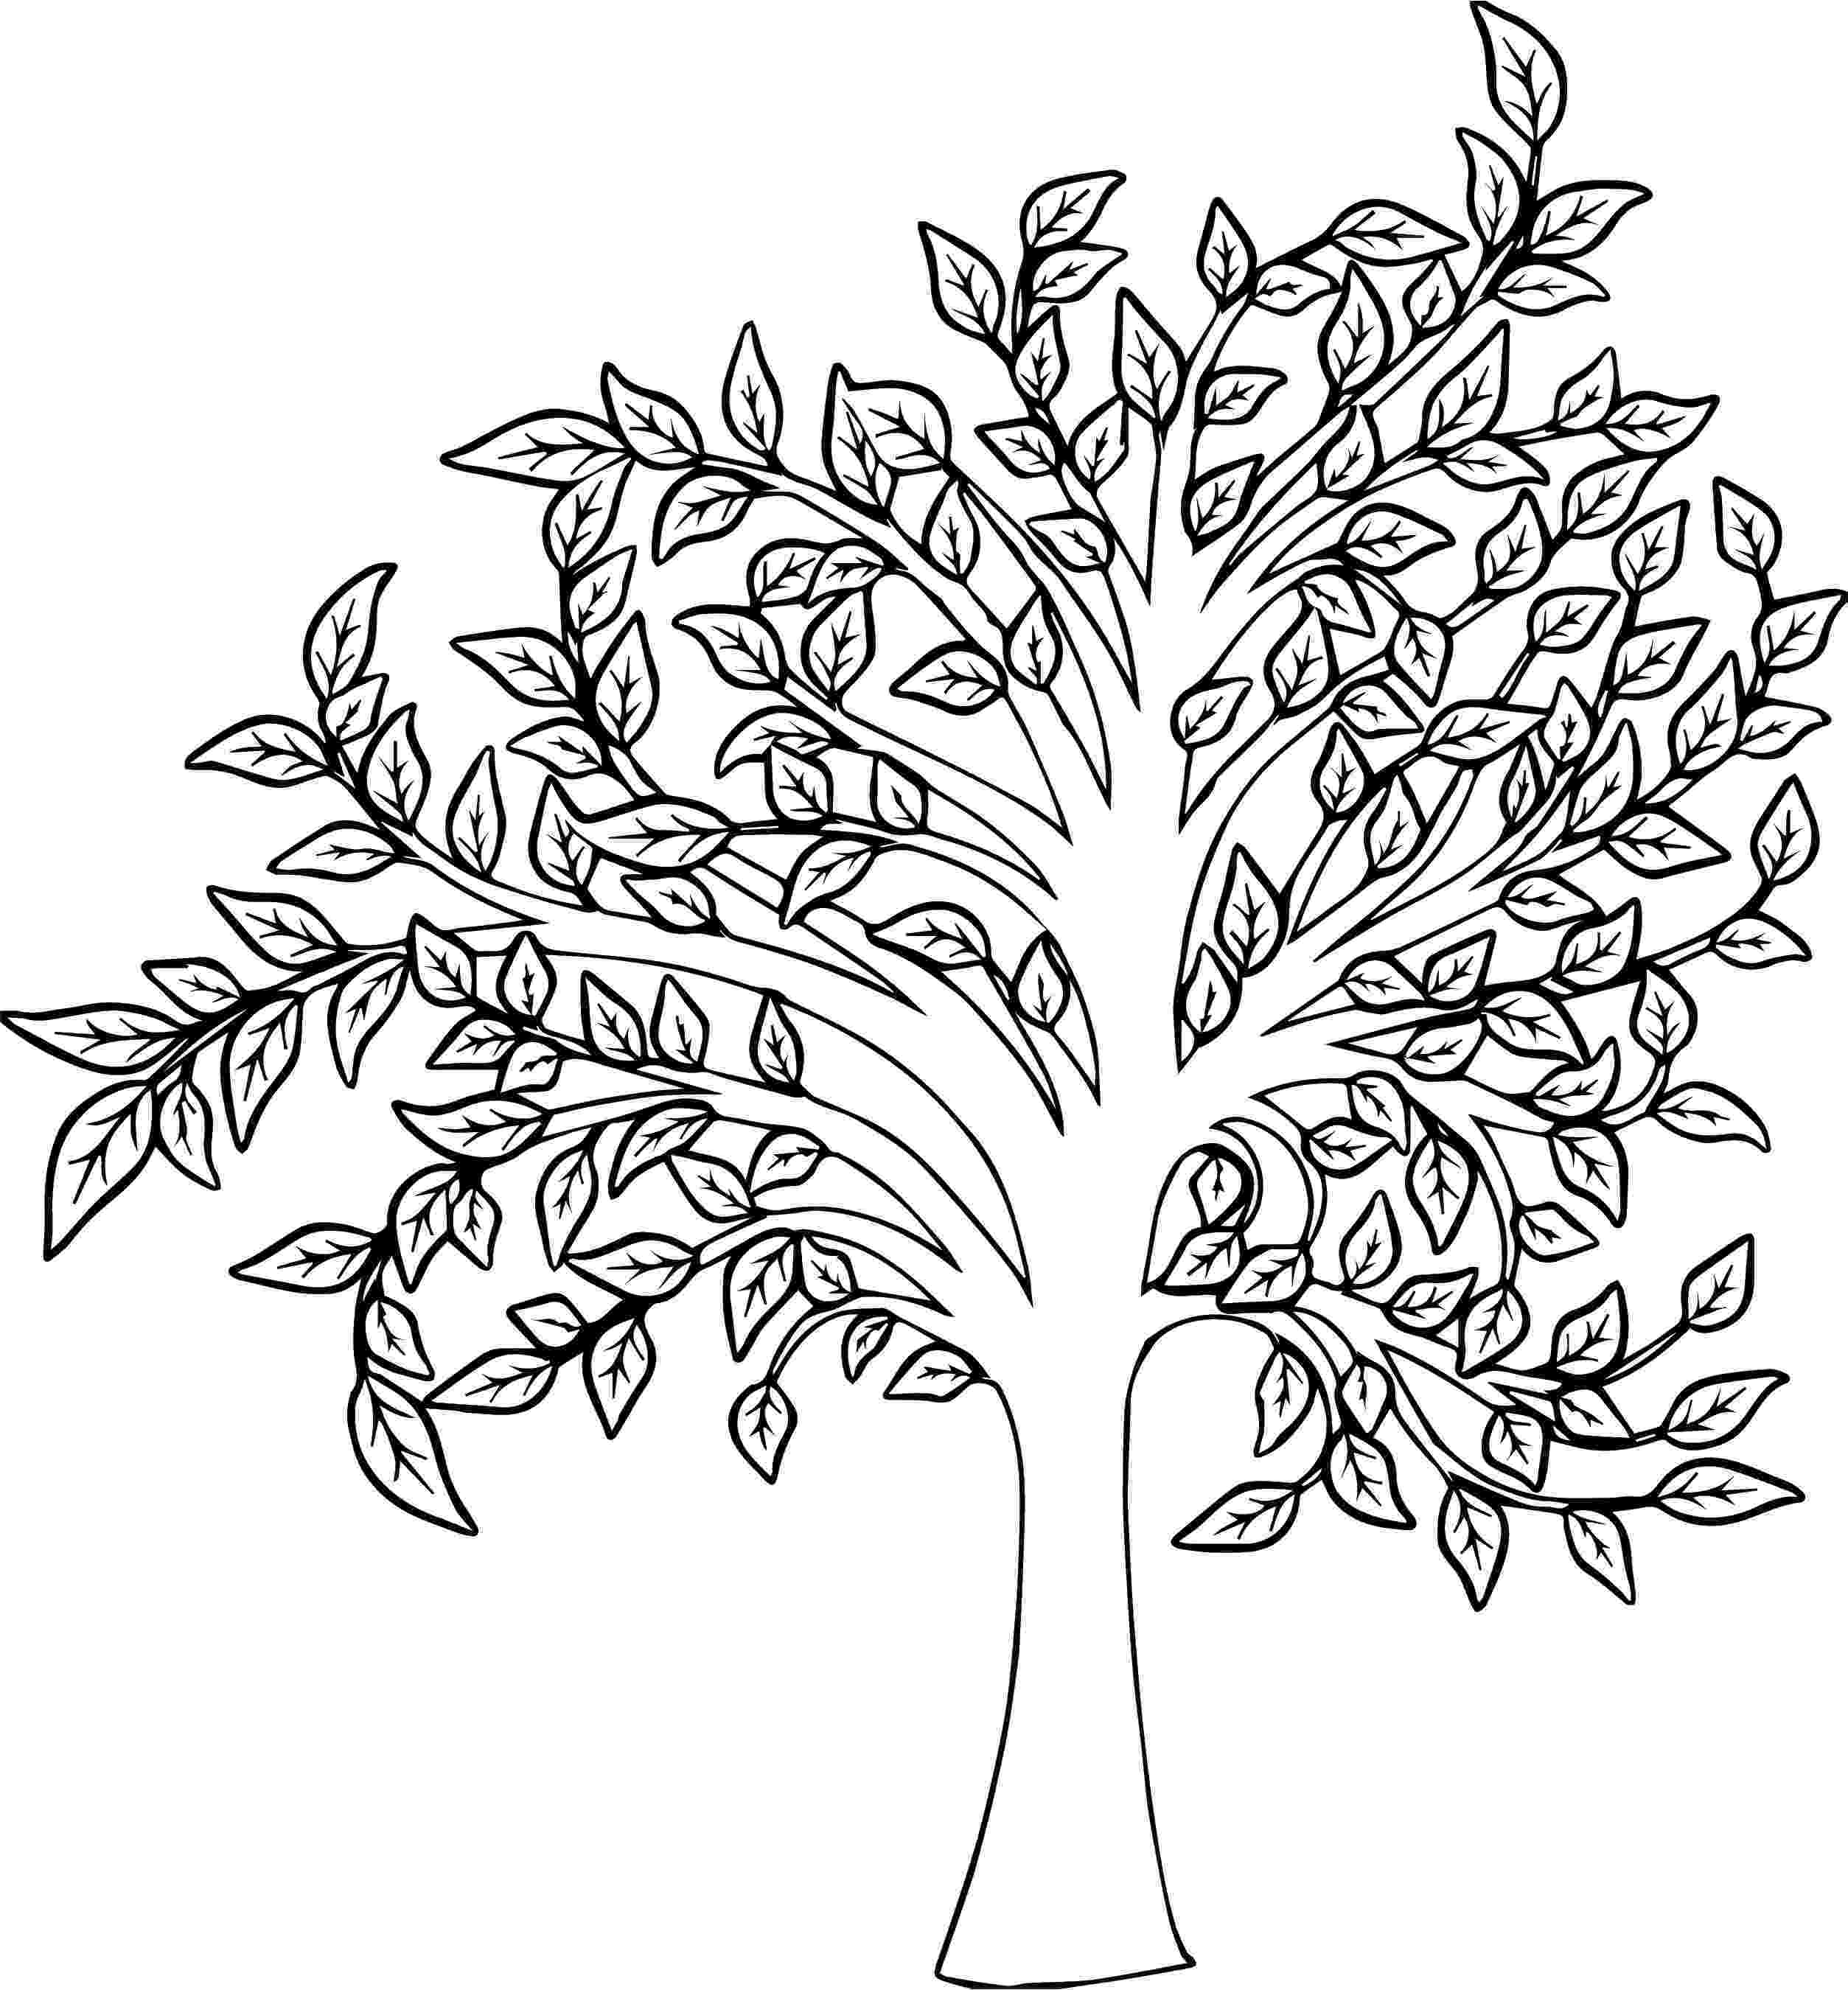 fall tree coloring pages mormon share tree bare black and white tree tree coloring tree fall pages